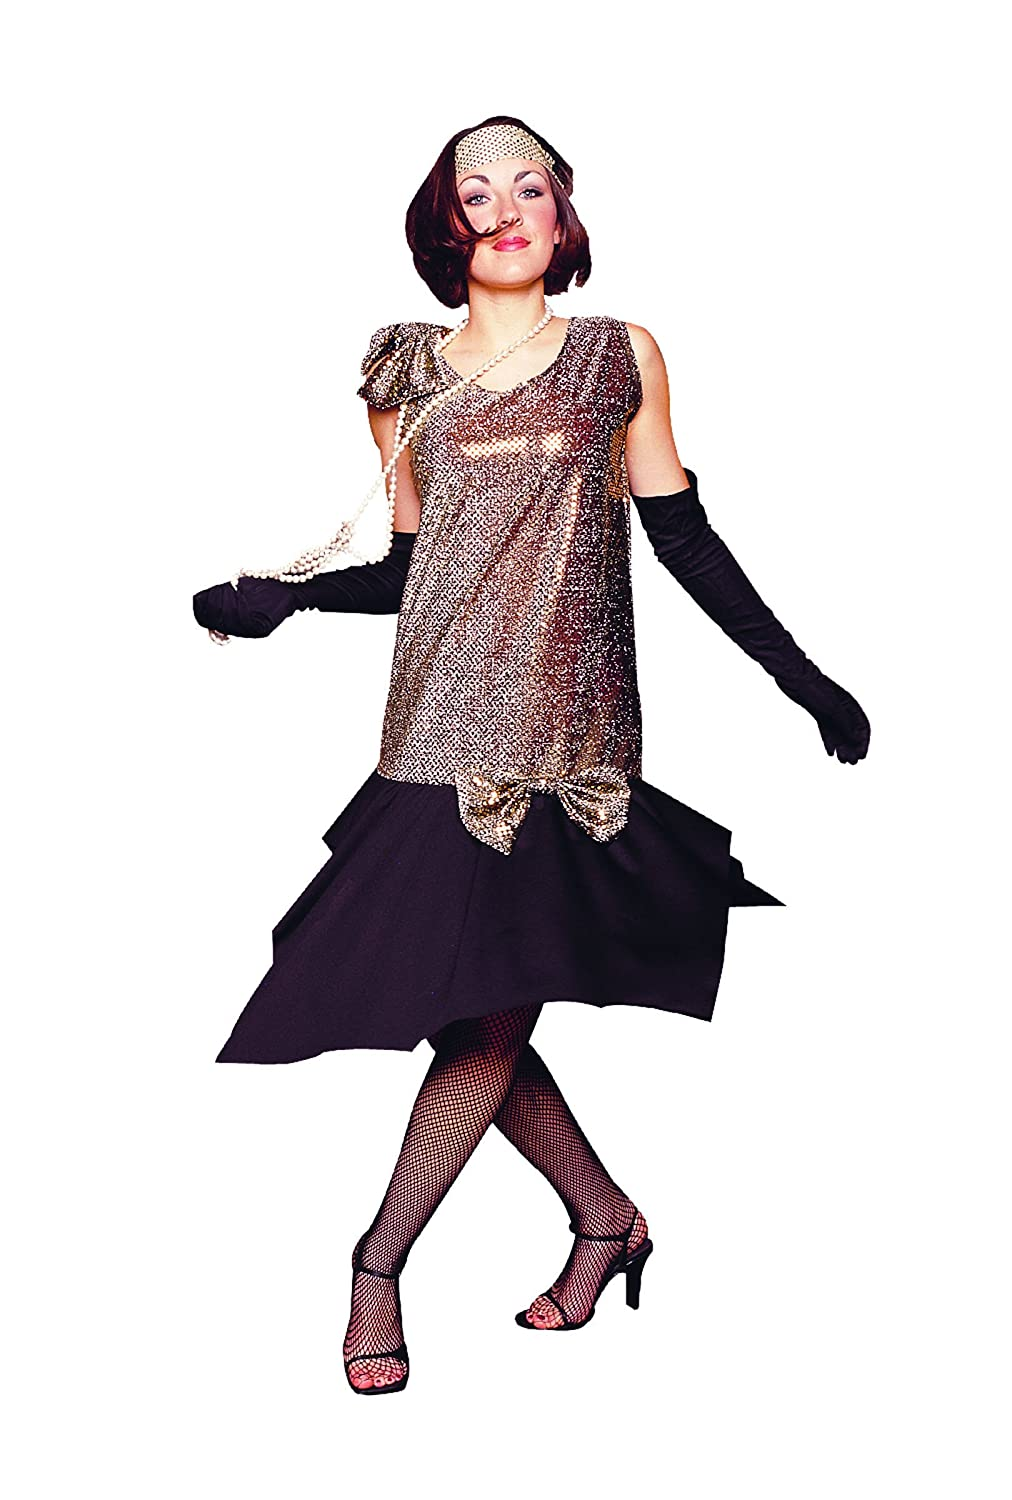 Flapper Costumes, Flapper Girl Costume Rag Time Flapper $28.30 AT vintagedancer.com